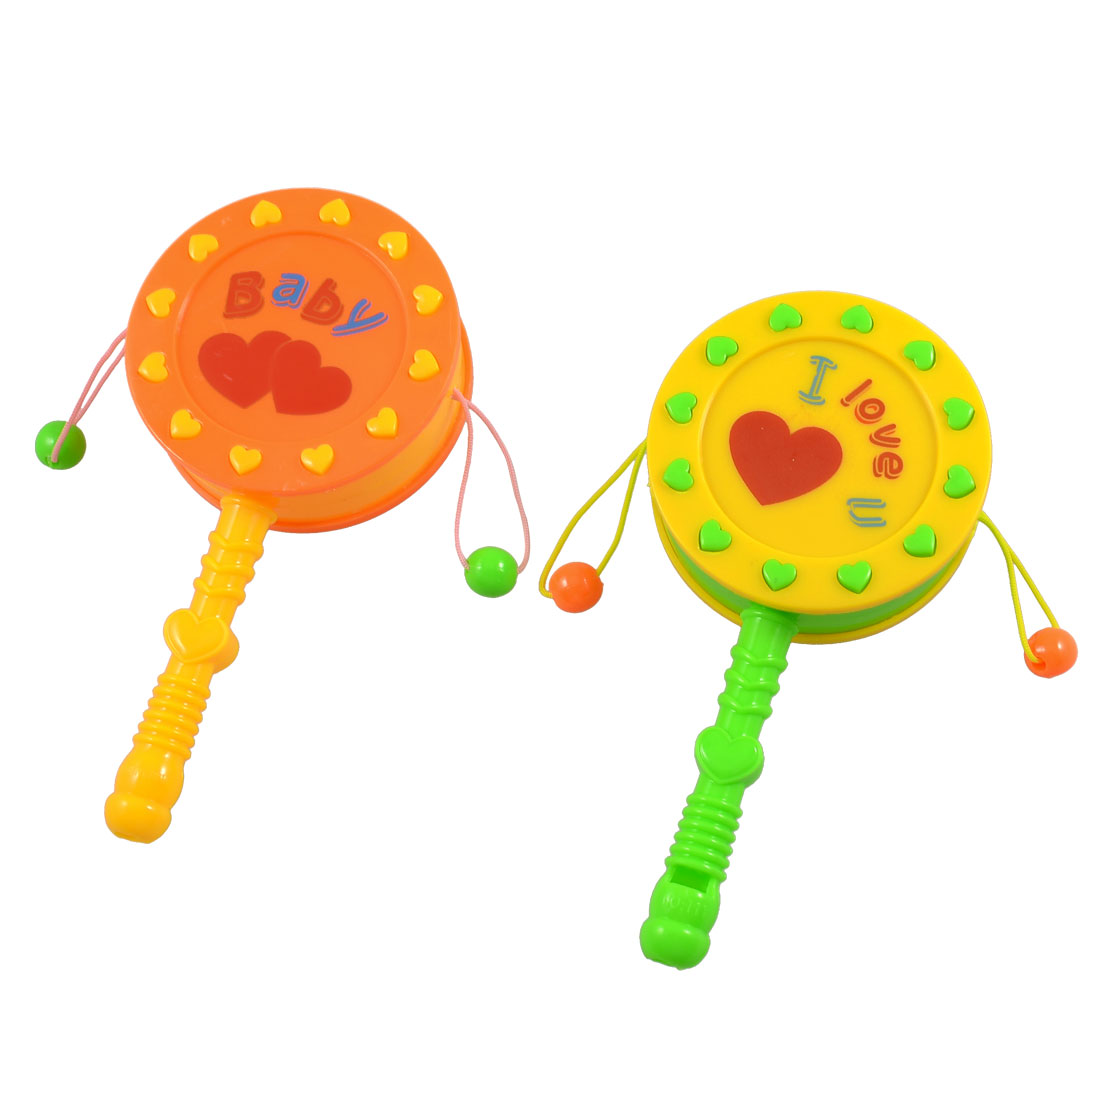 Babies Yellow Orange Plastic Nonslip Handle Rattle Drum Play Toy 2 Pcs